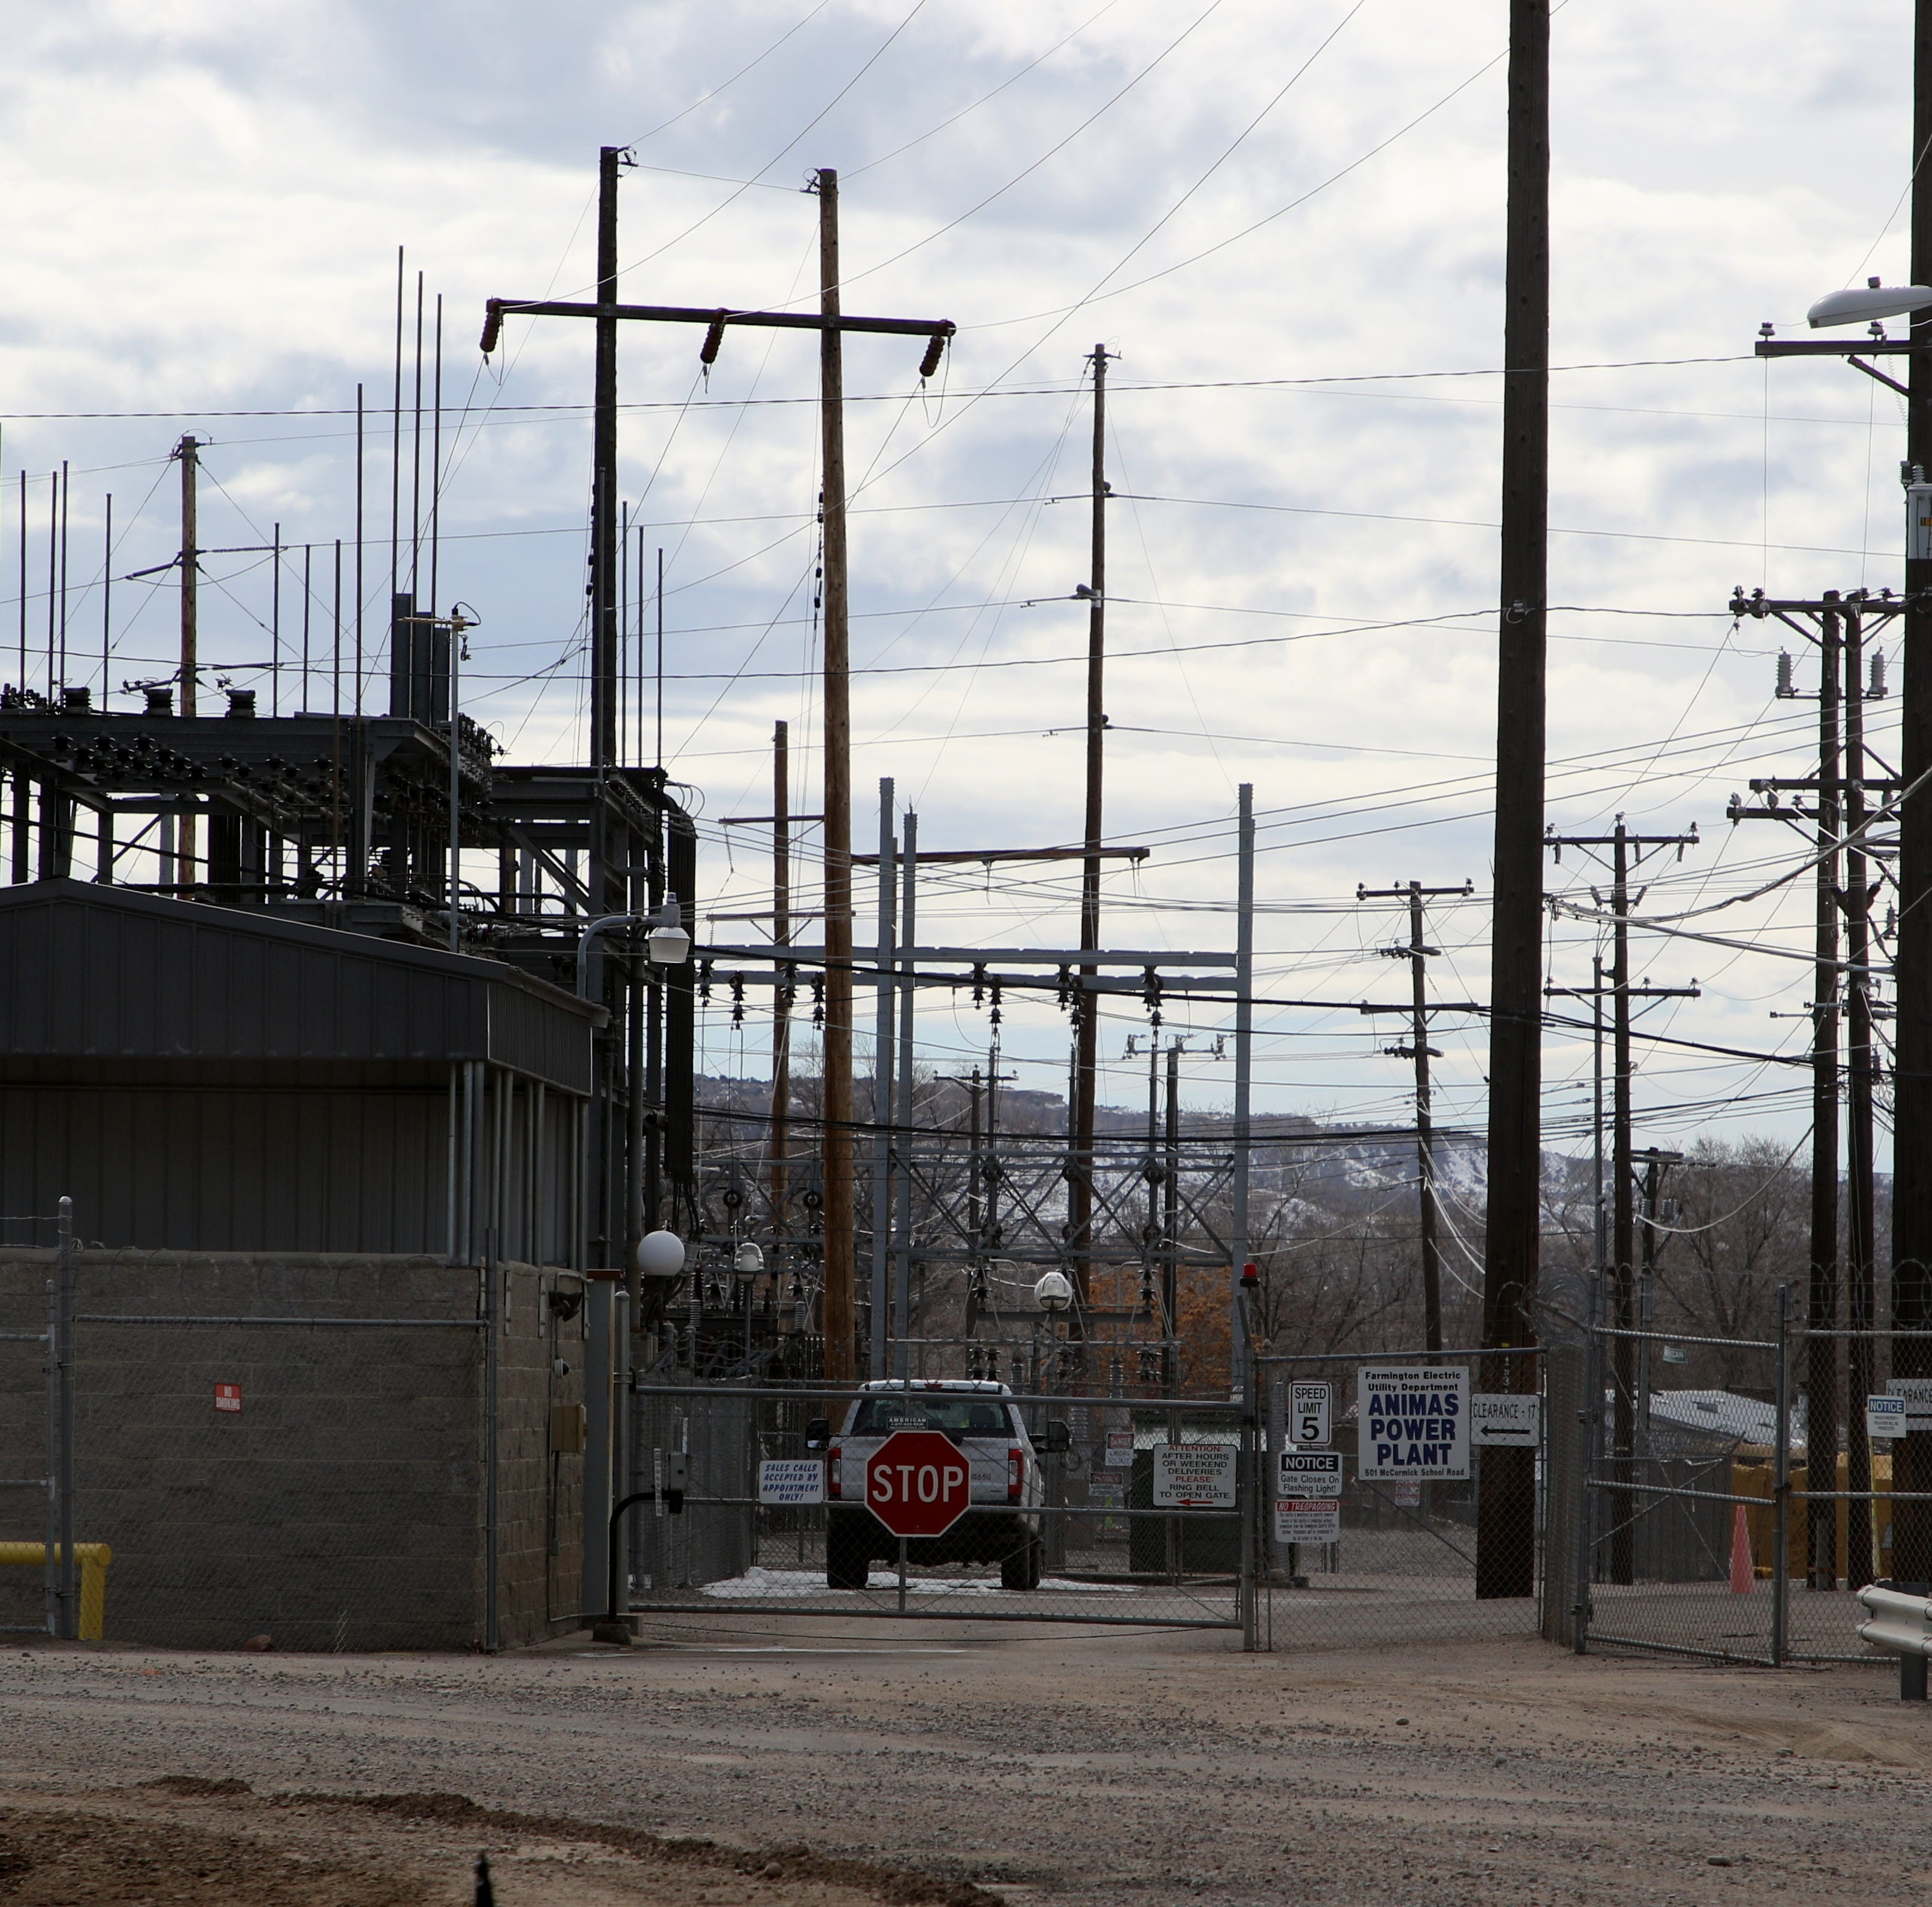 Farmington considers reciprocating engines to replace Animas Power Plant